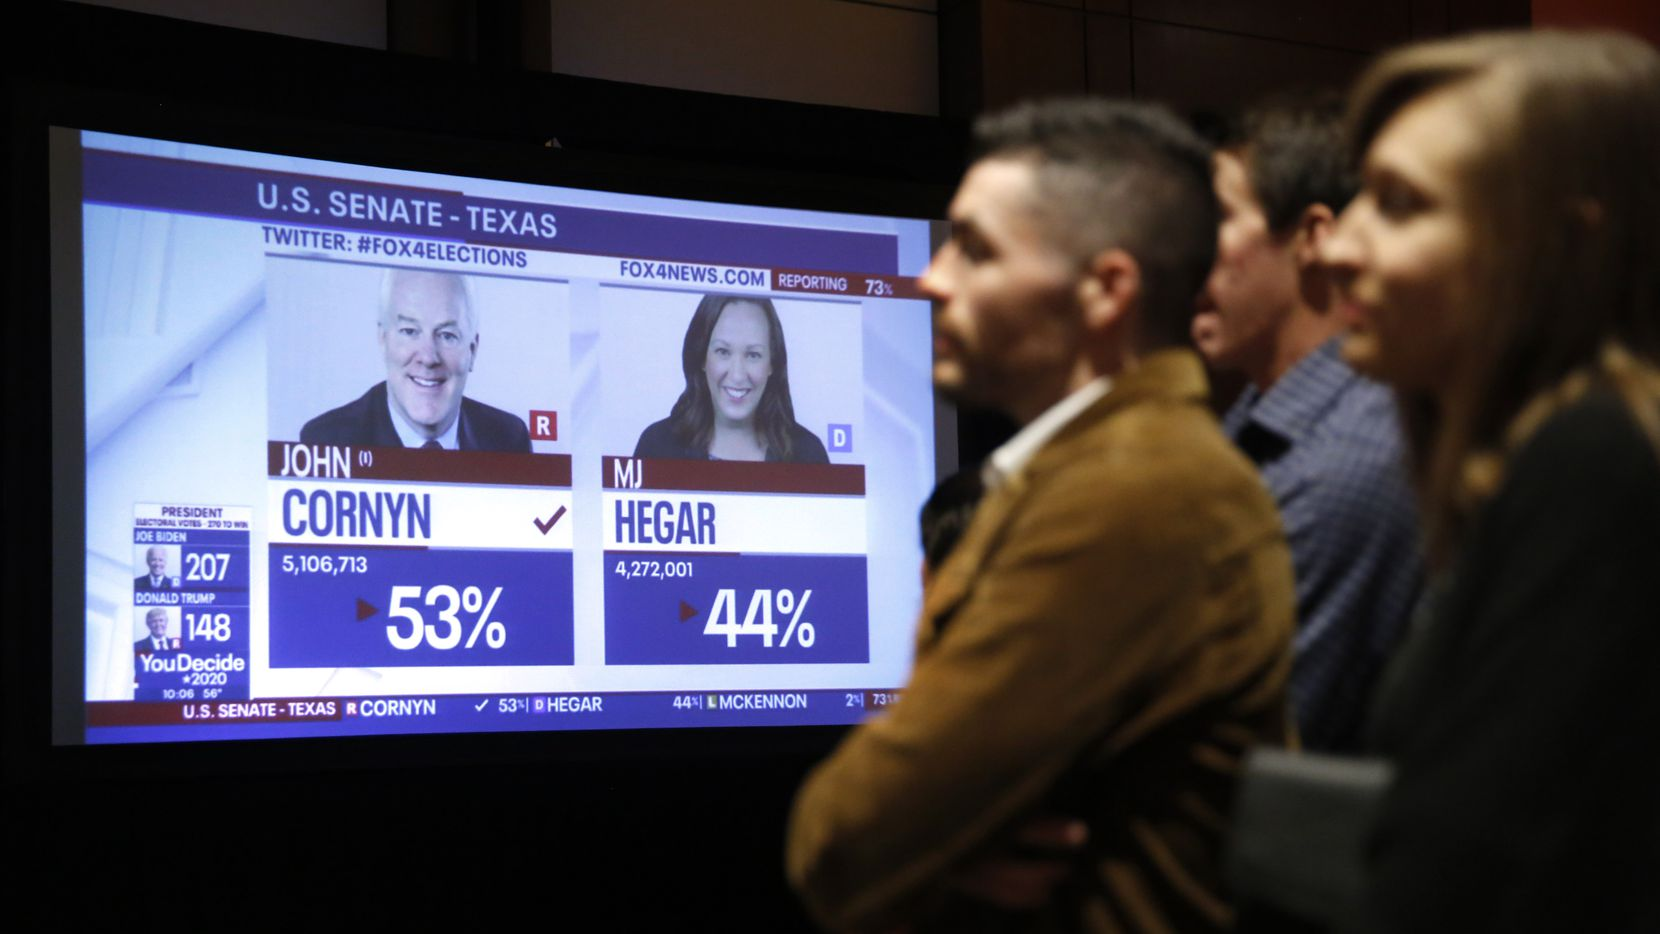 U.S. Senator John Cornyn and challenger MJ Hegar are pictured with some results at the Tarrant County GOP election watch party at the Hurst Conference Center in Hurst, Texas, Tuesday, November 3, 2020.